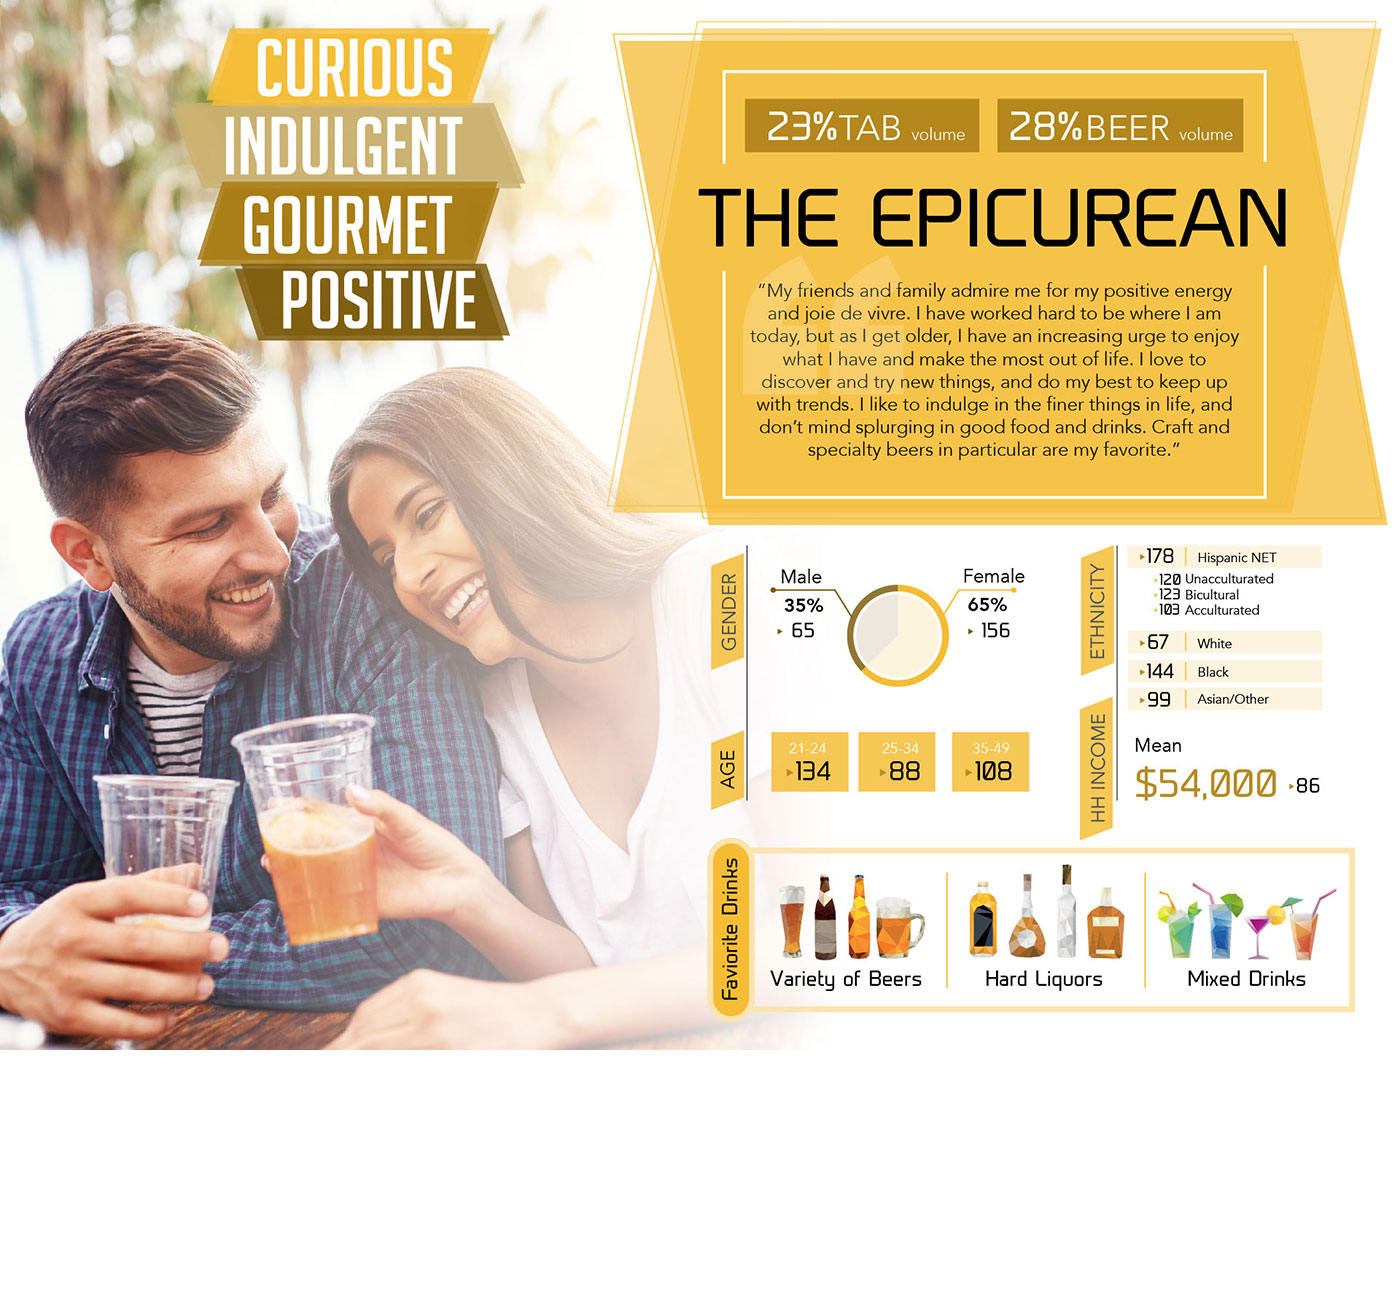 Market Research Infographic - The Epicurean